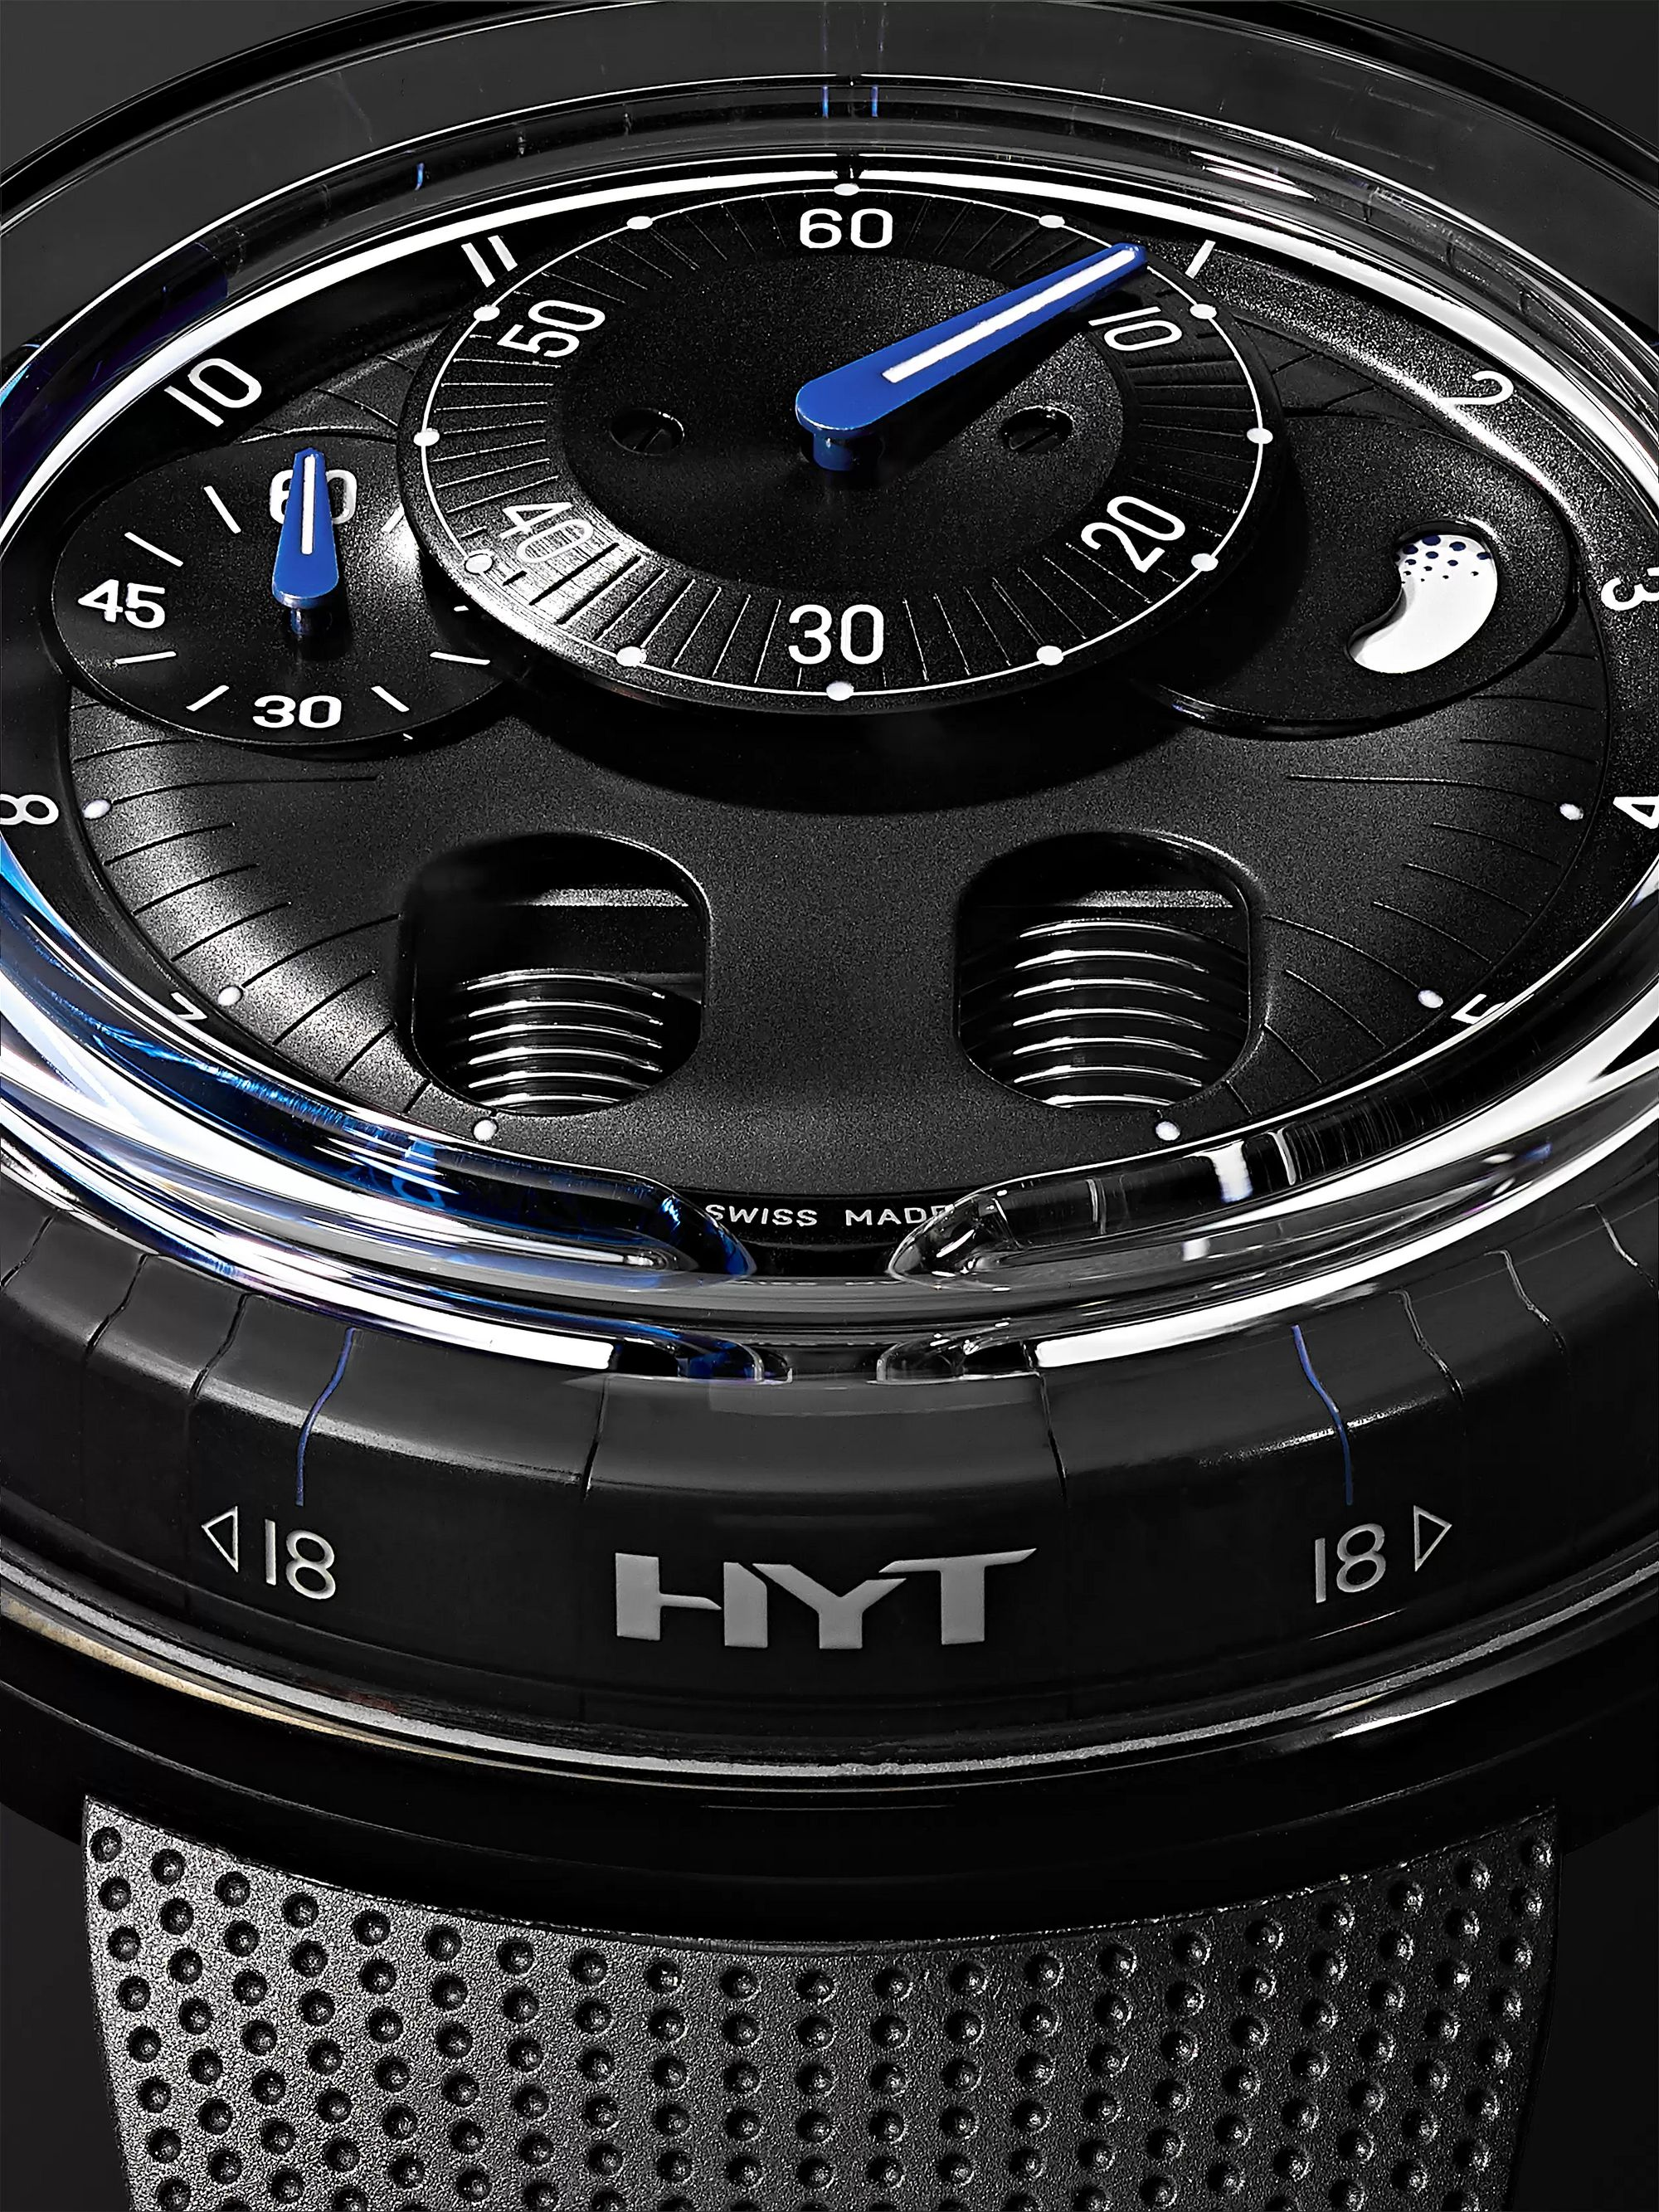 HYT H0 Hand-Wound 48.8mm Stainless Steel and Rubber Watch, Ref. No. 048-TT-91-BF-RU